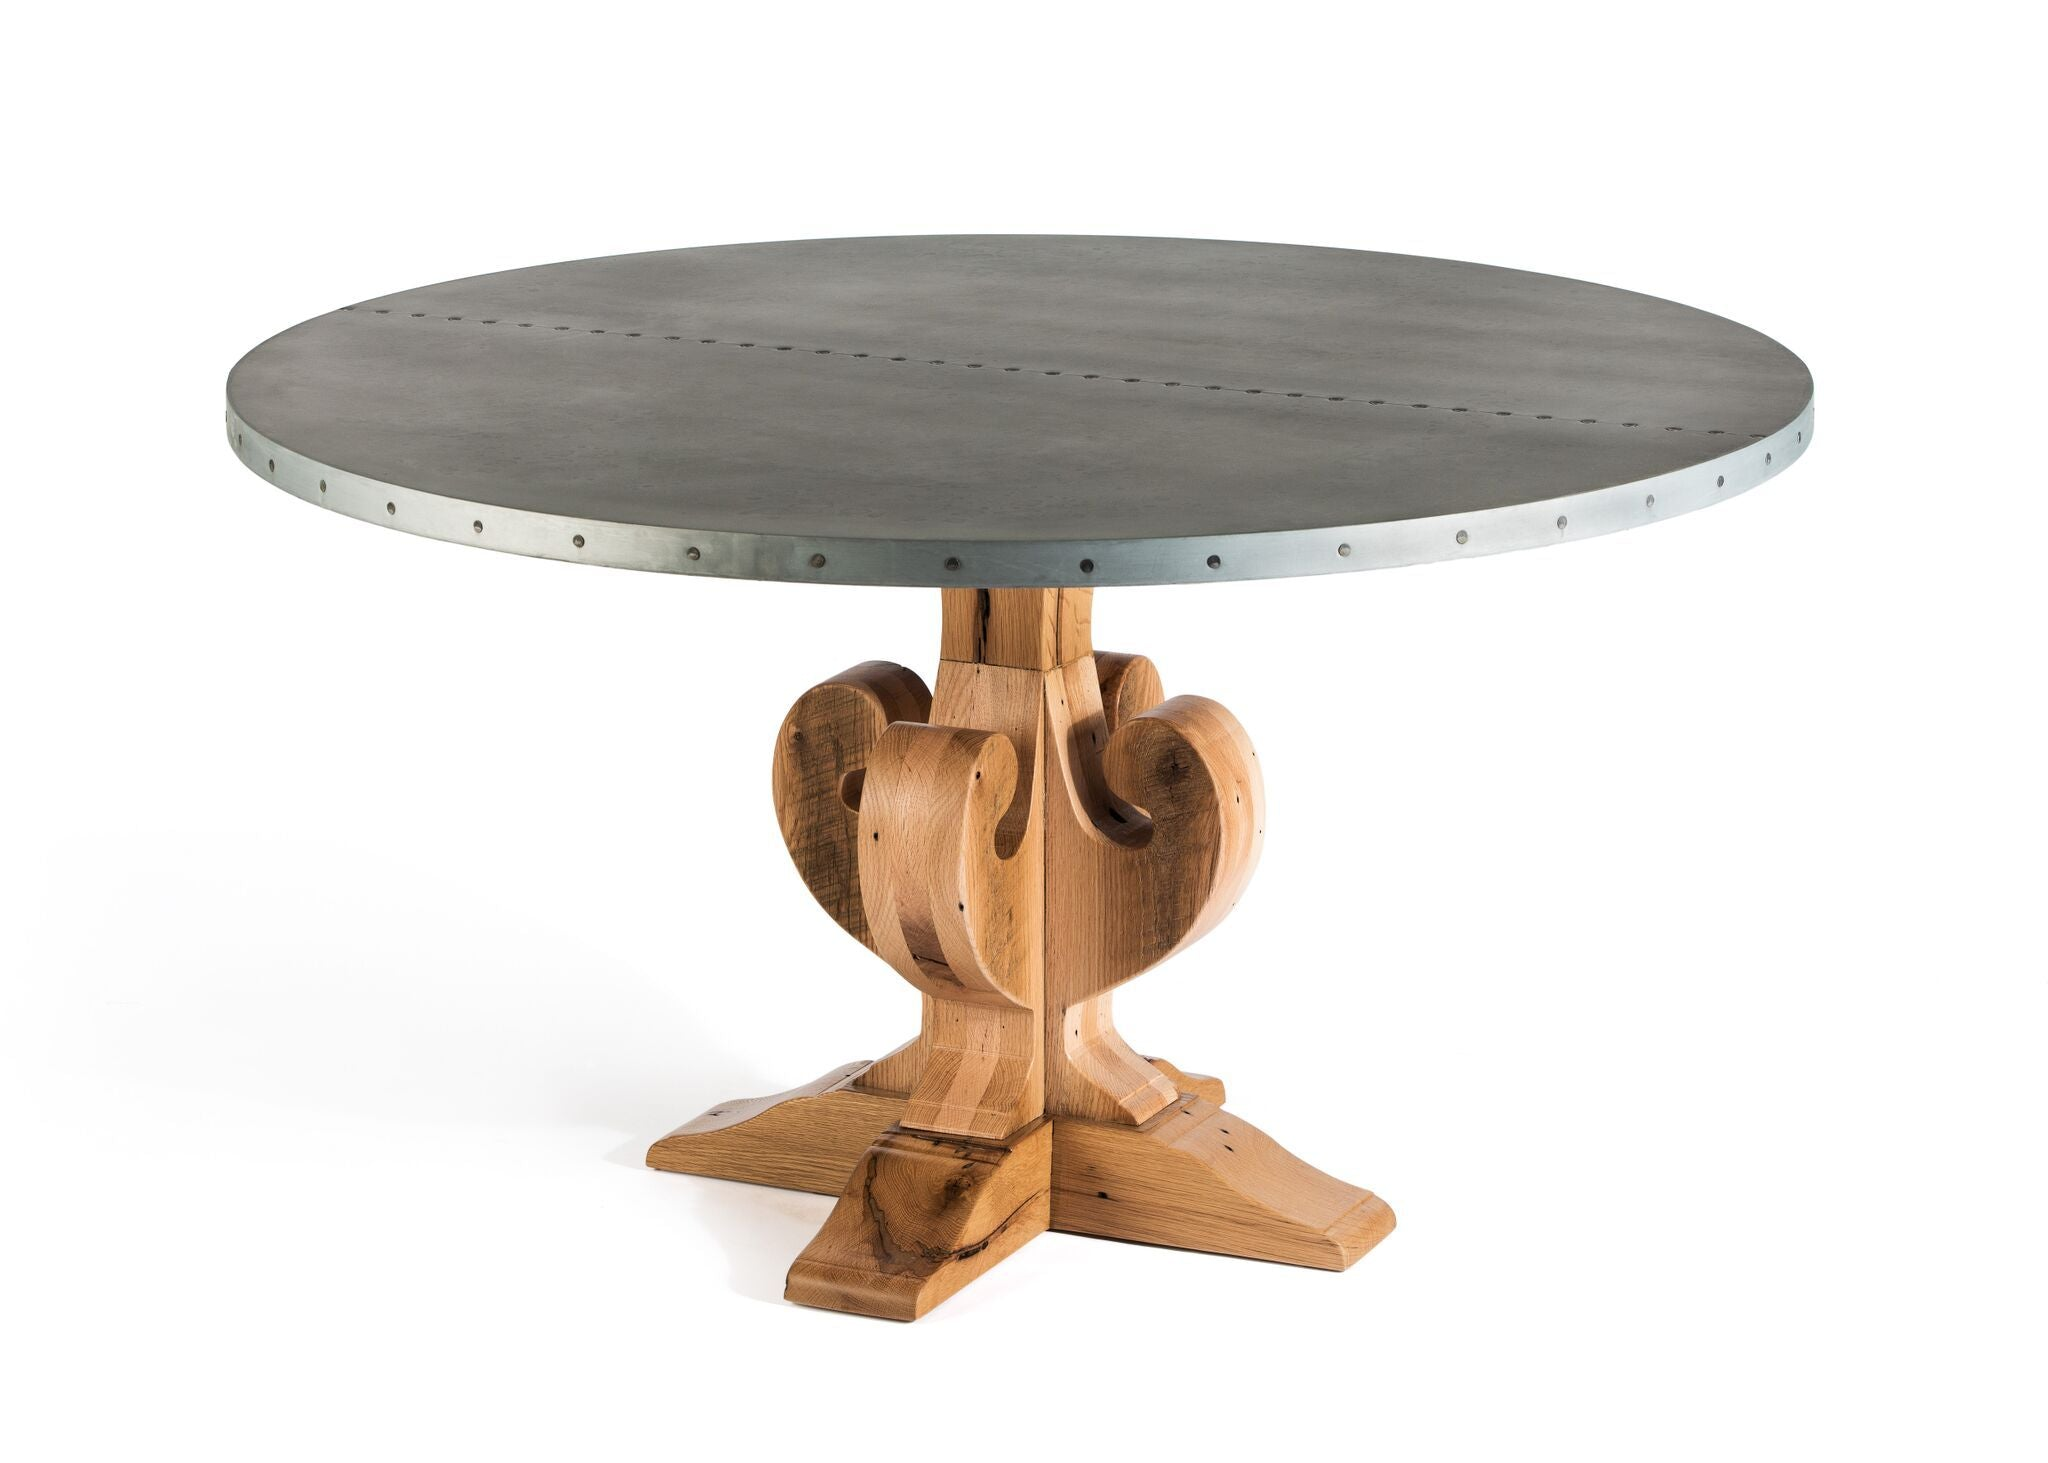 "Zinc Round Tables | French Trestle | CLASSIC | Natural Reclaimed Oak | CUSTOM SIZE L 35 W 30 H 30 | 1.5"" Standard"